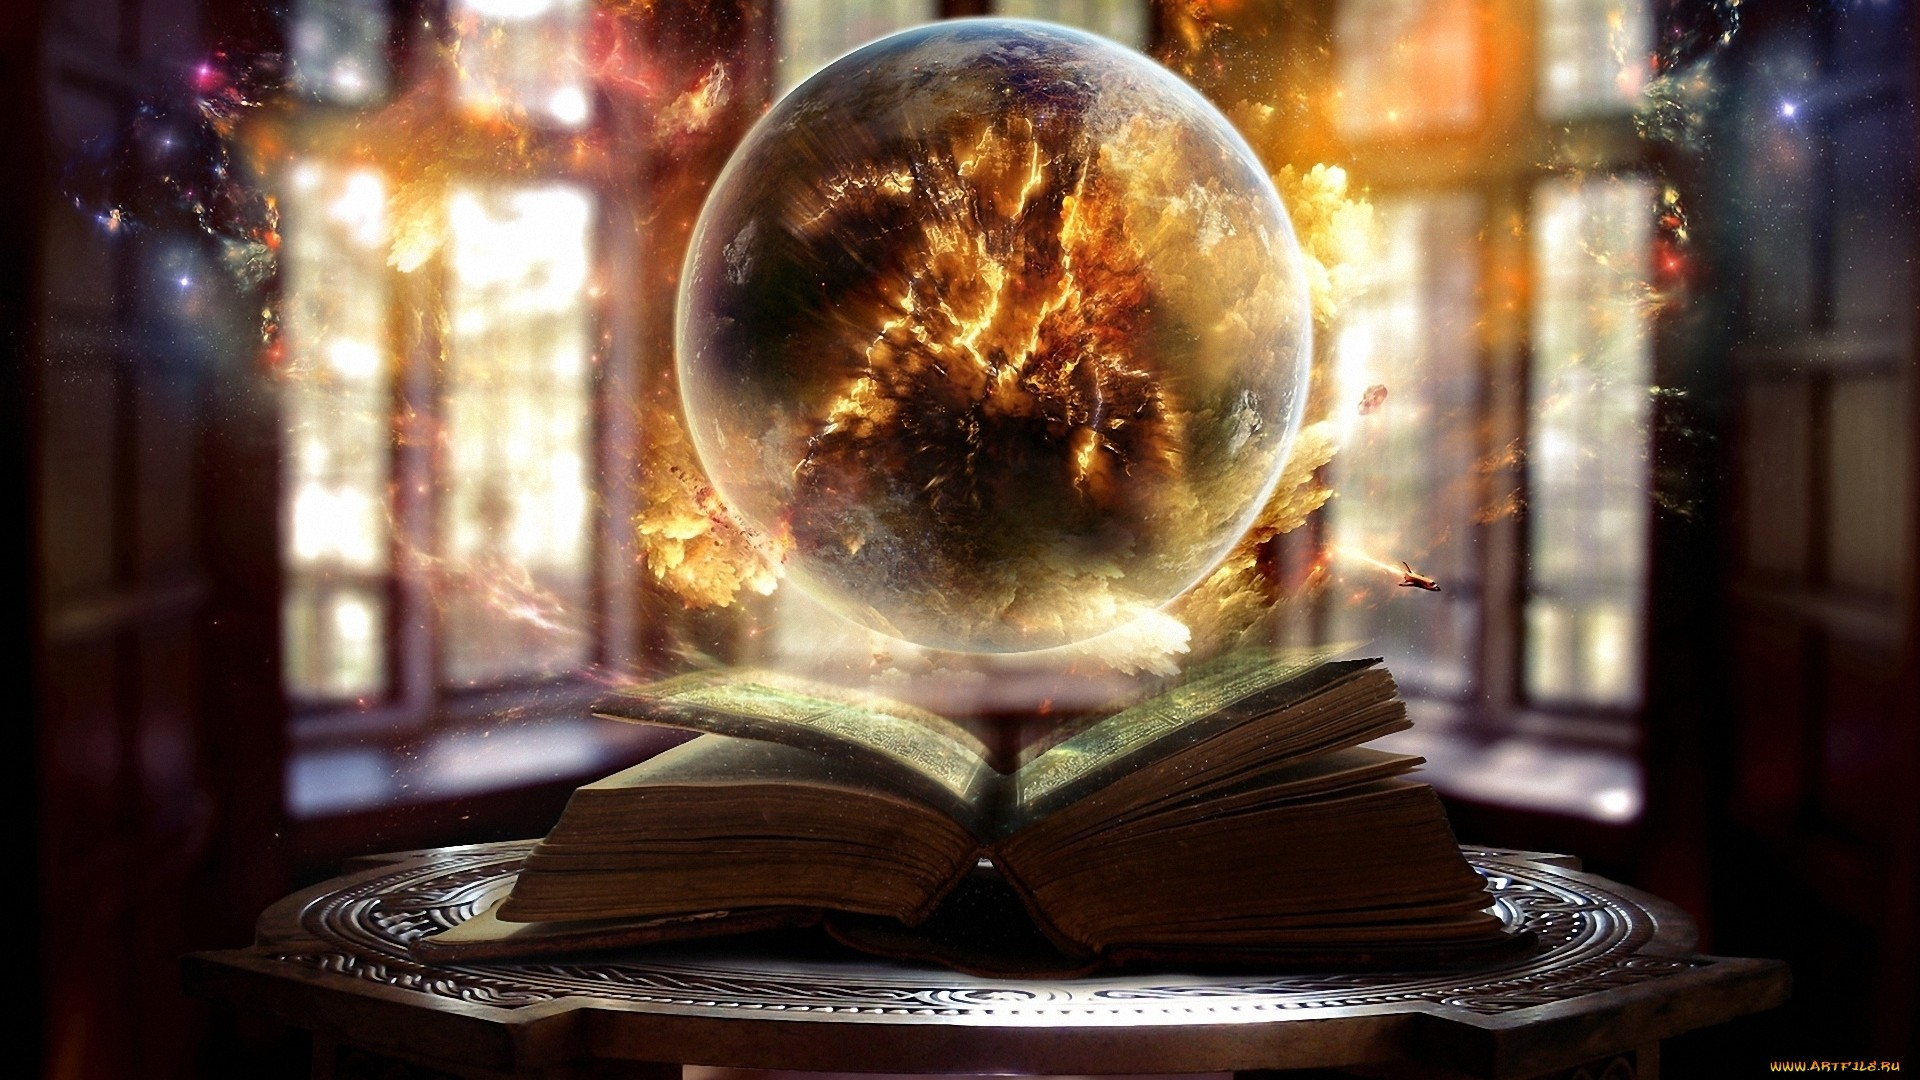 15480 download wallpaper Fantasy, Books screensavers and pictures for free